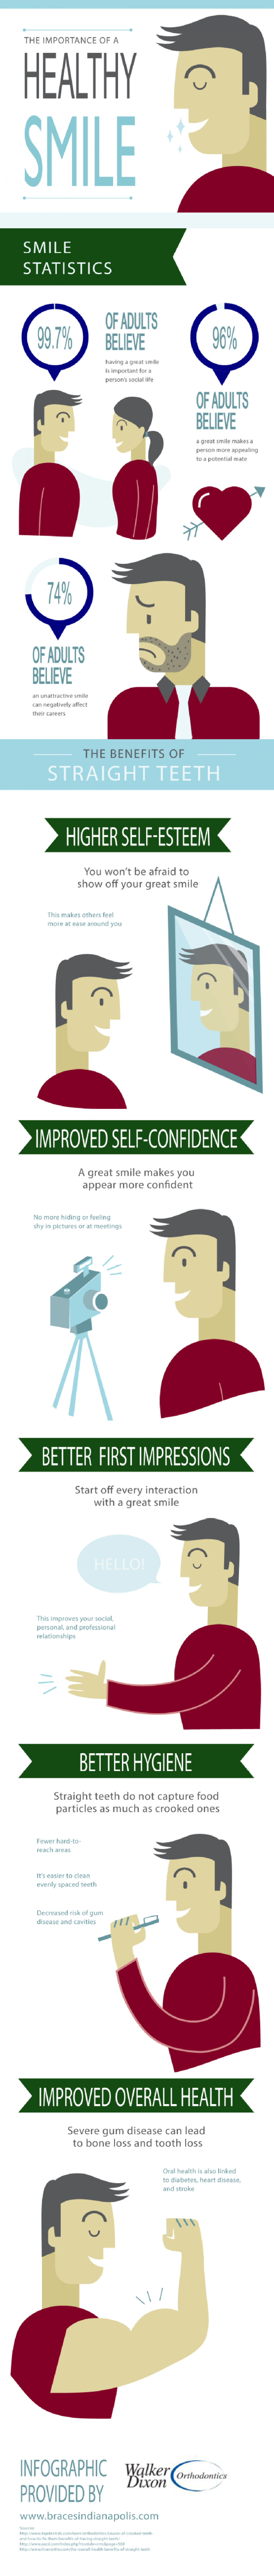 The Importance of a Healthy Smile Infographic